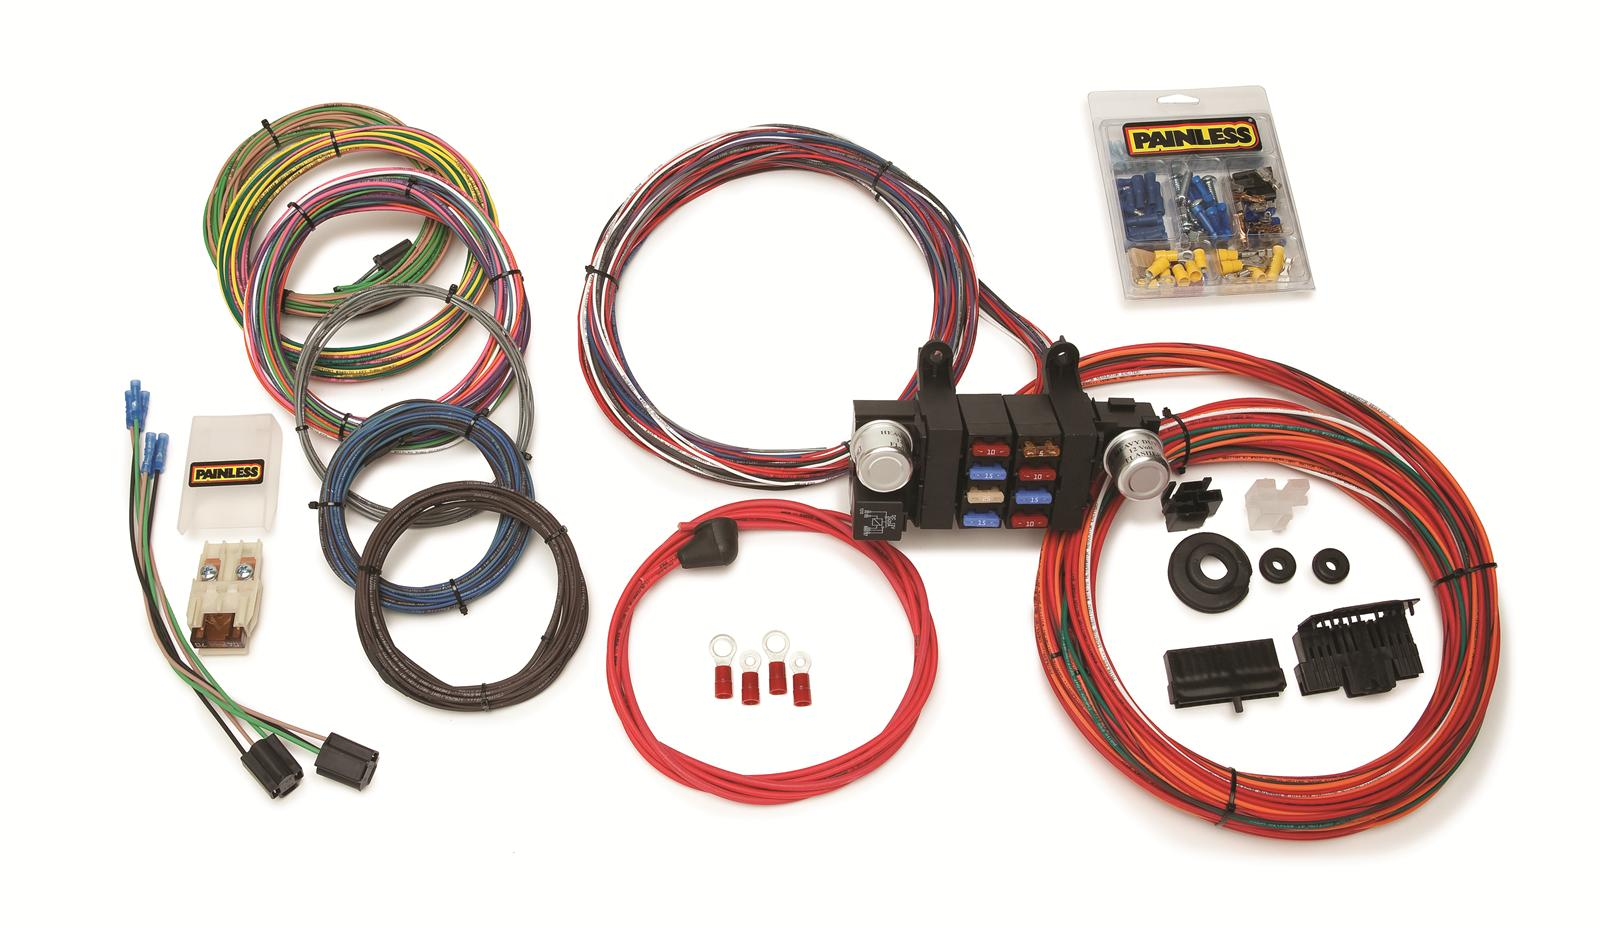 Painless Performance 18-Circuit Modular Chassis Harnesses 10308 - Free  Shipping on Orders Over $49 at Summit Racing